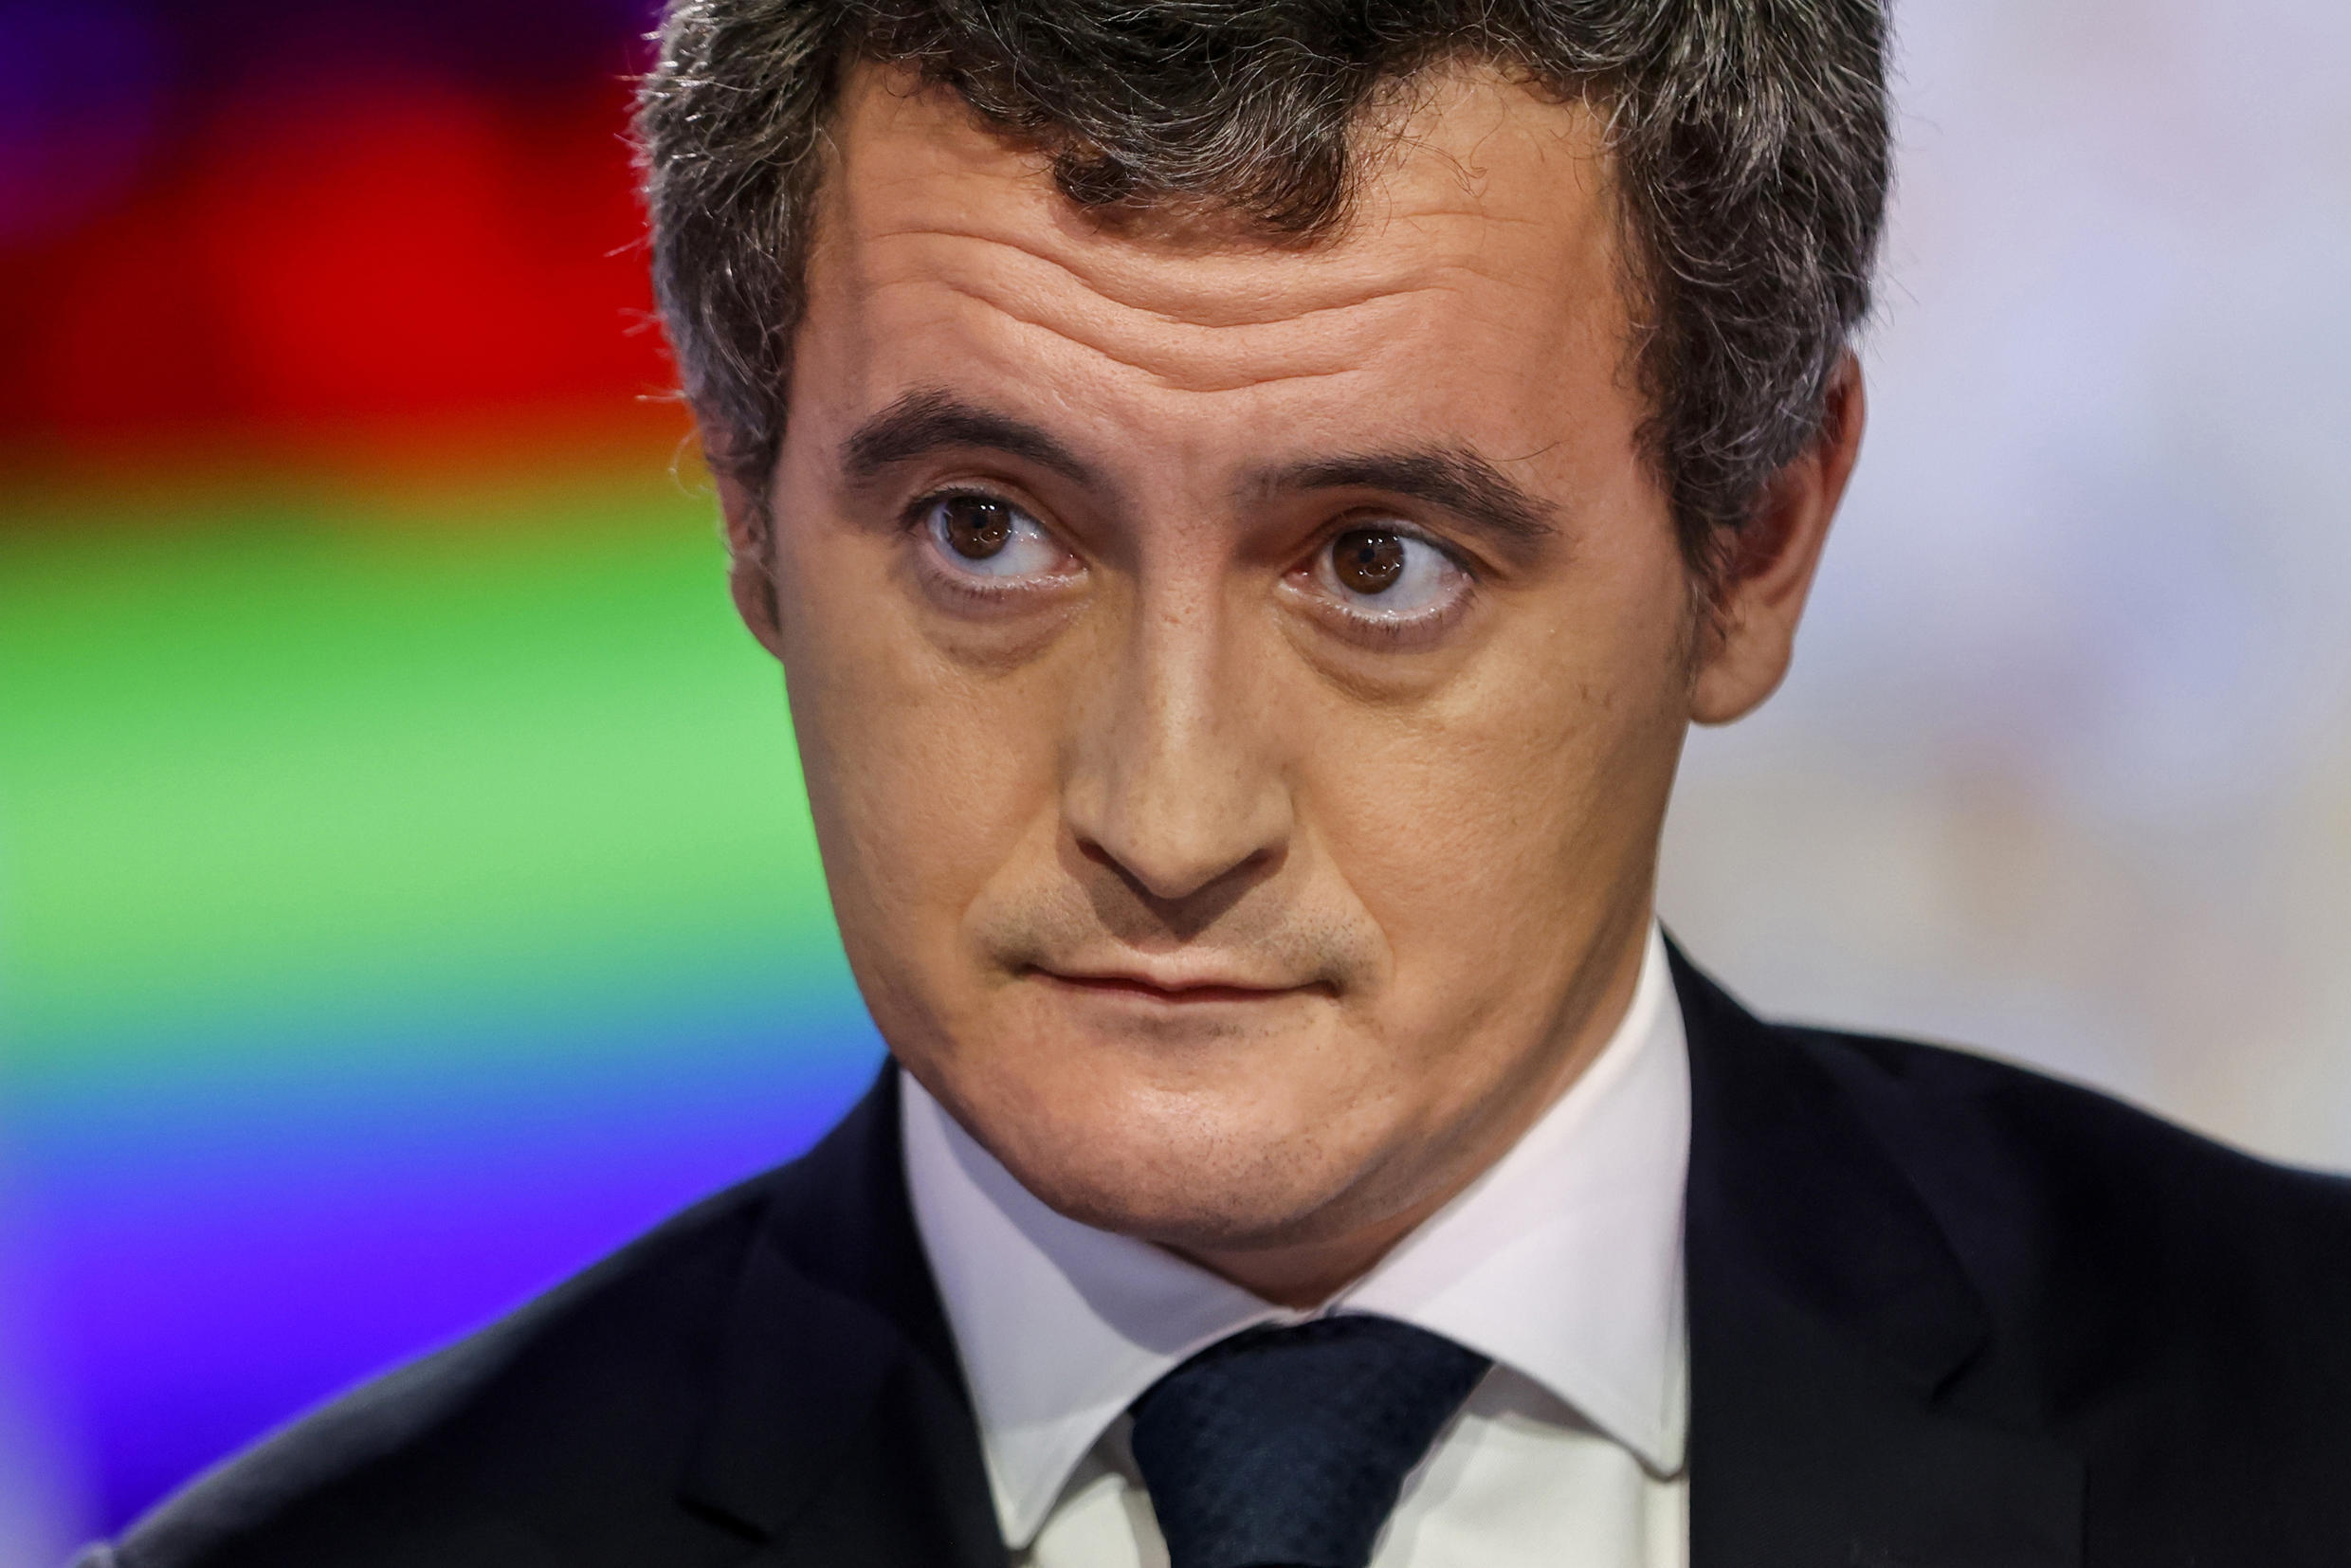 Darmanin has become the focus of anti-government protests over police violence